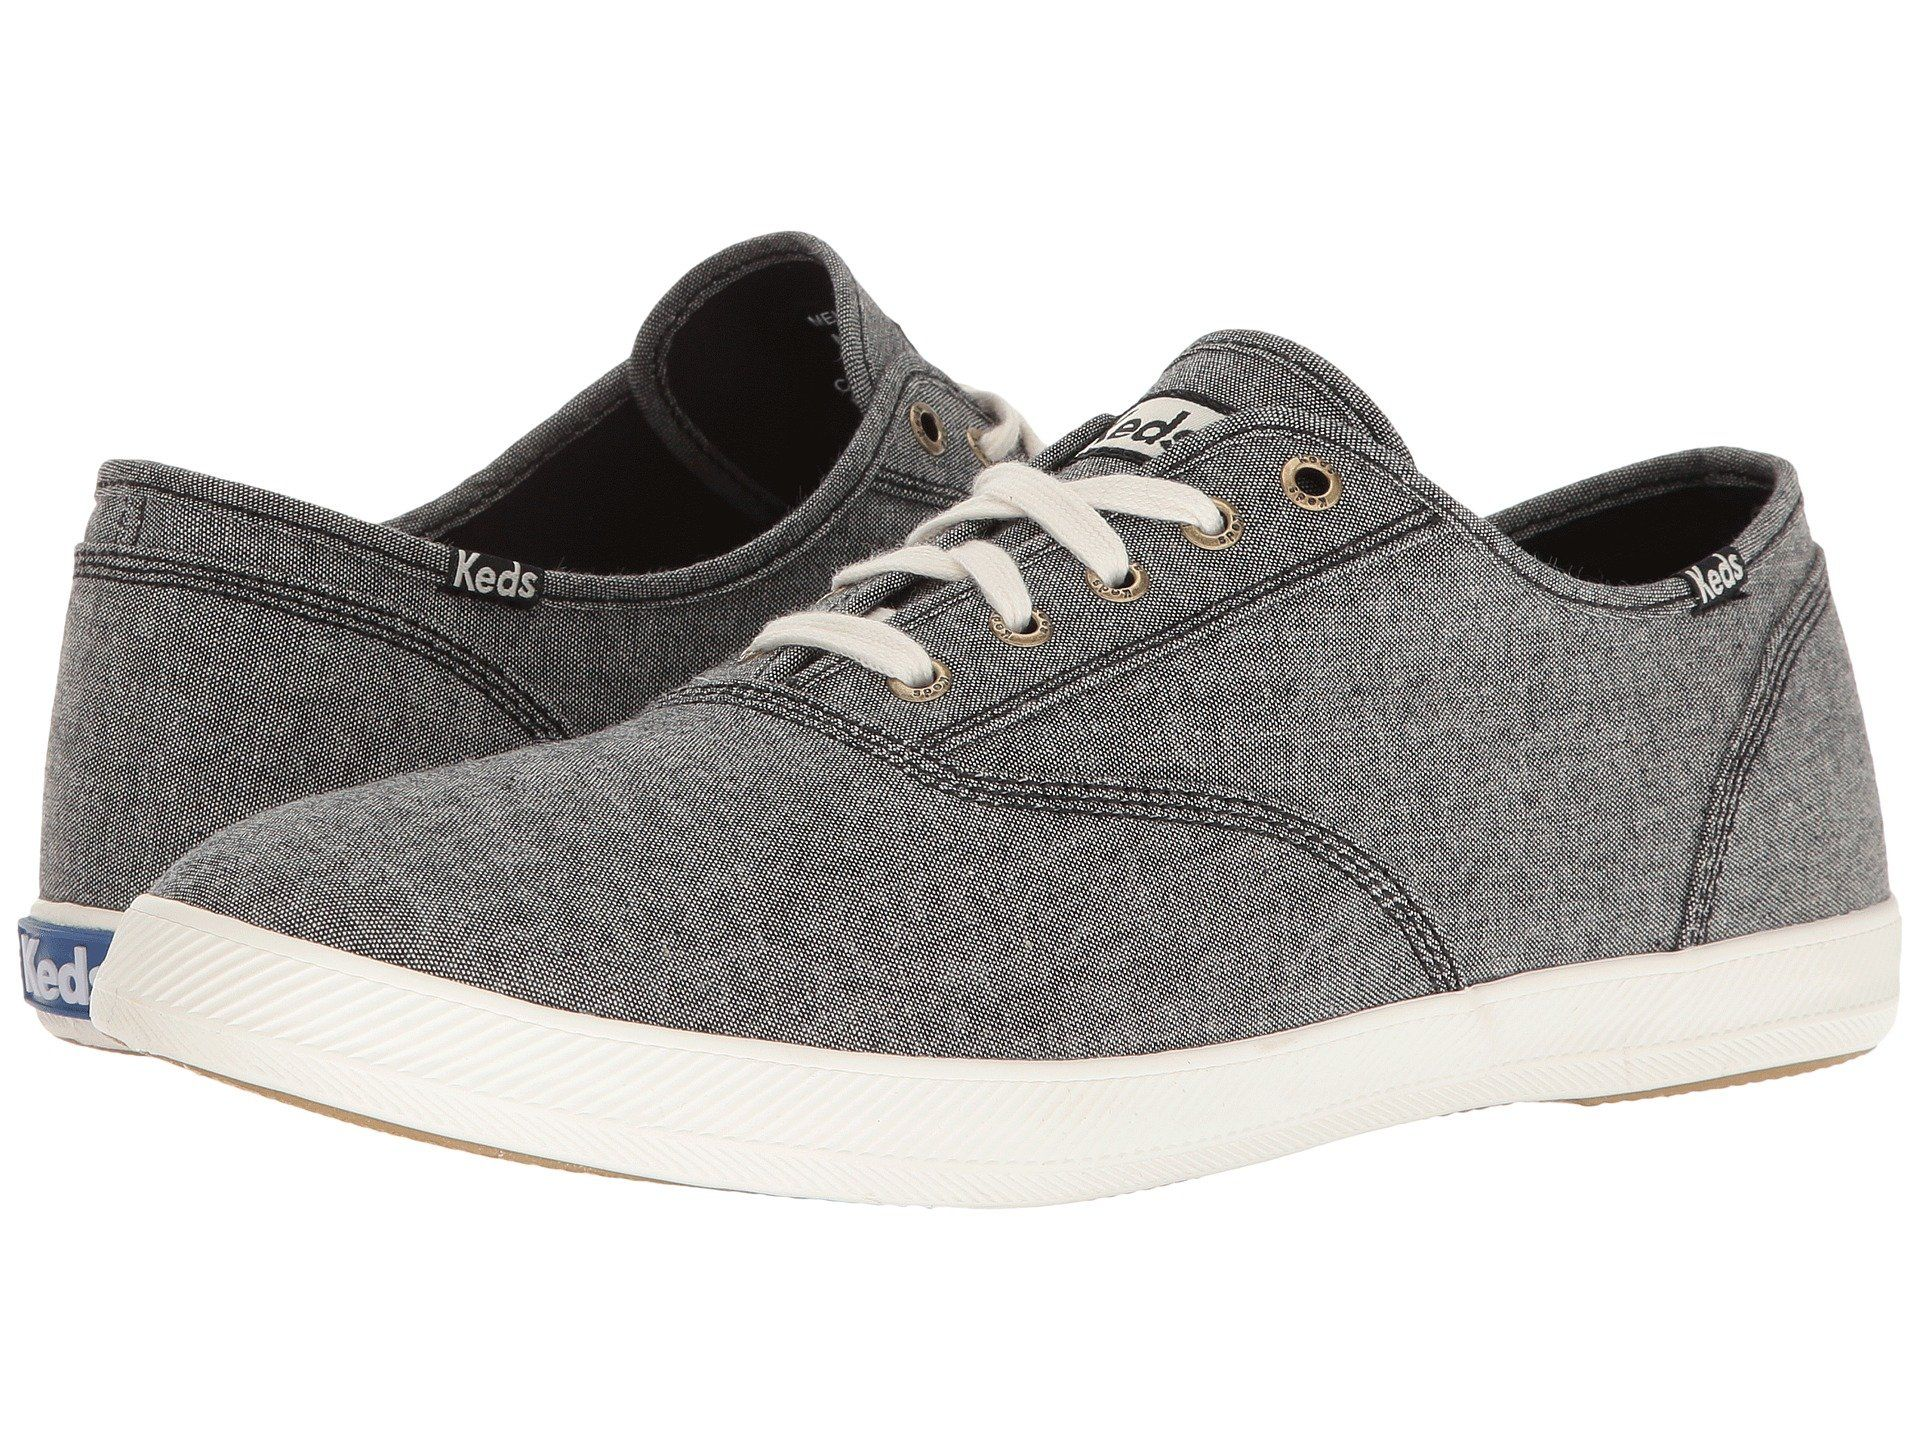 c7852c886b4 KEDS Champion CVO Seasonals Chambray.  keds  shoes